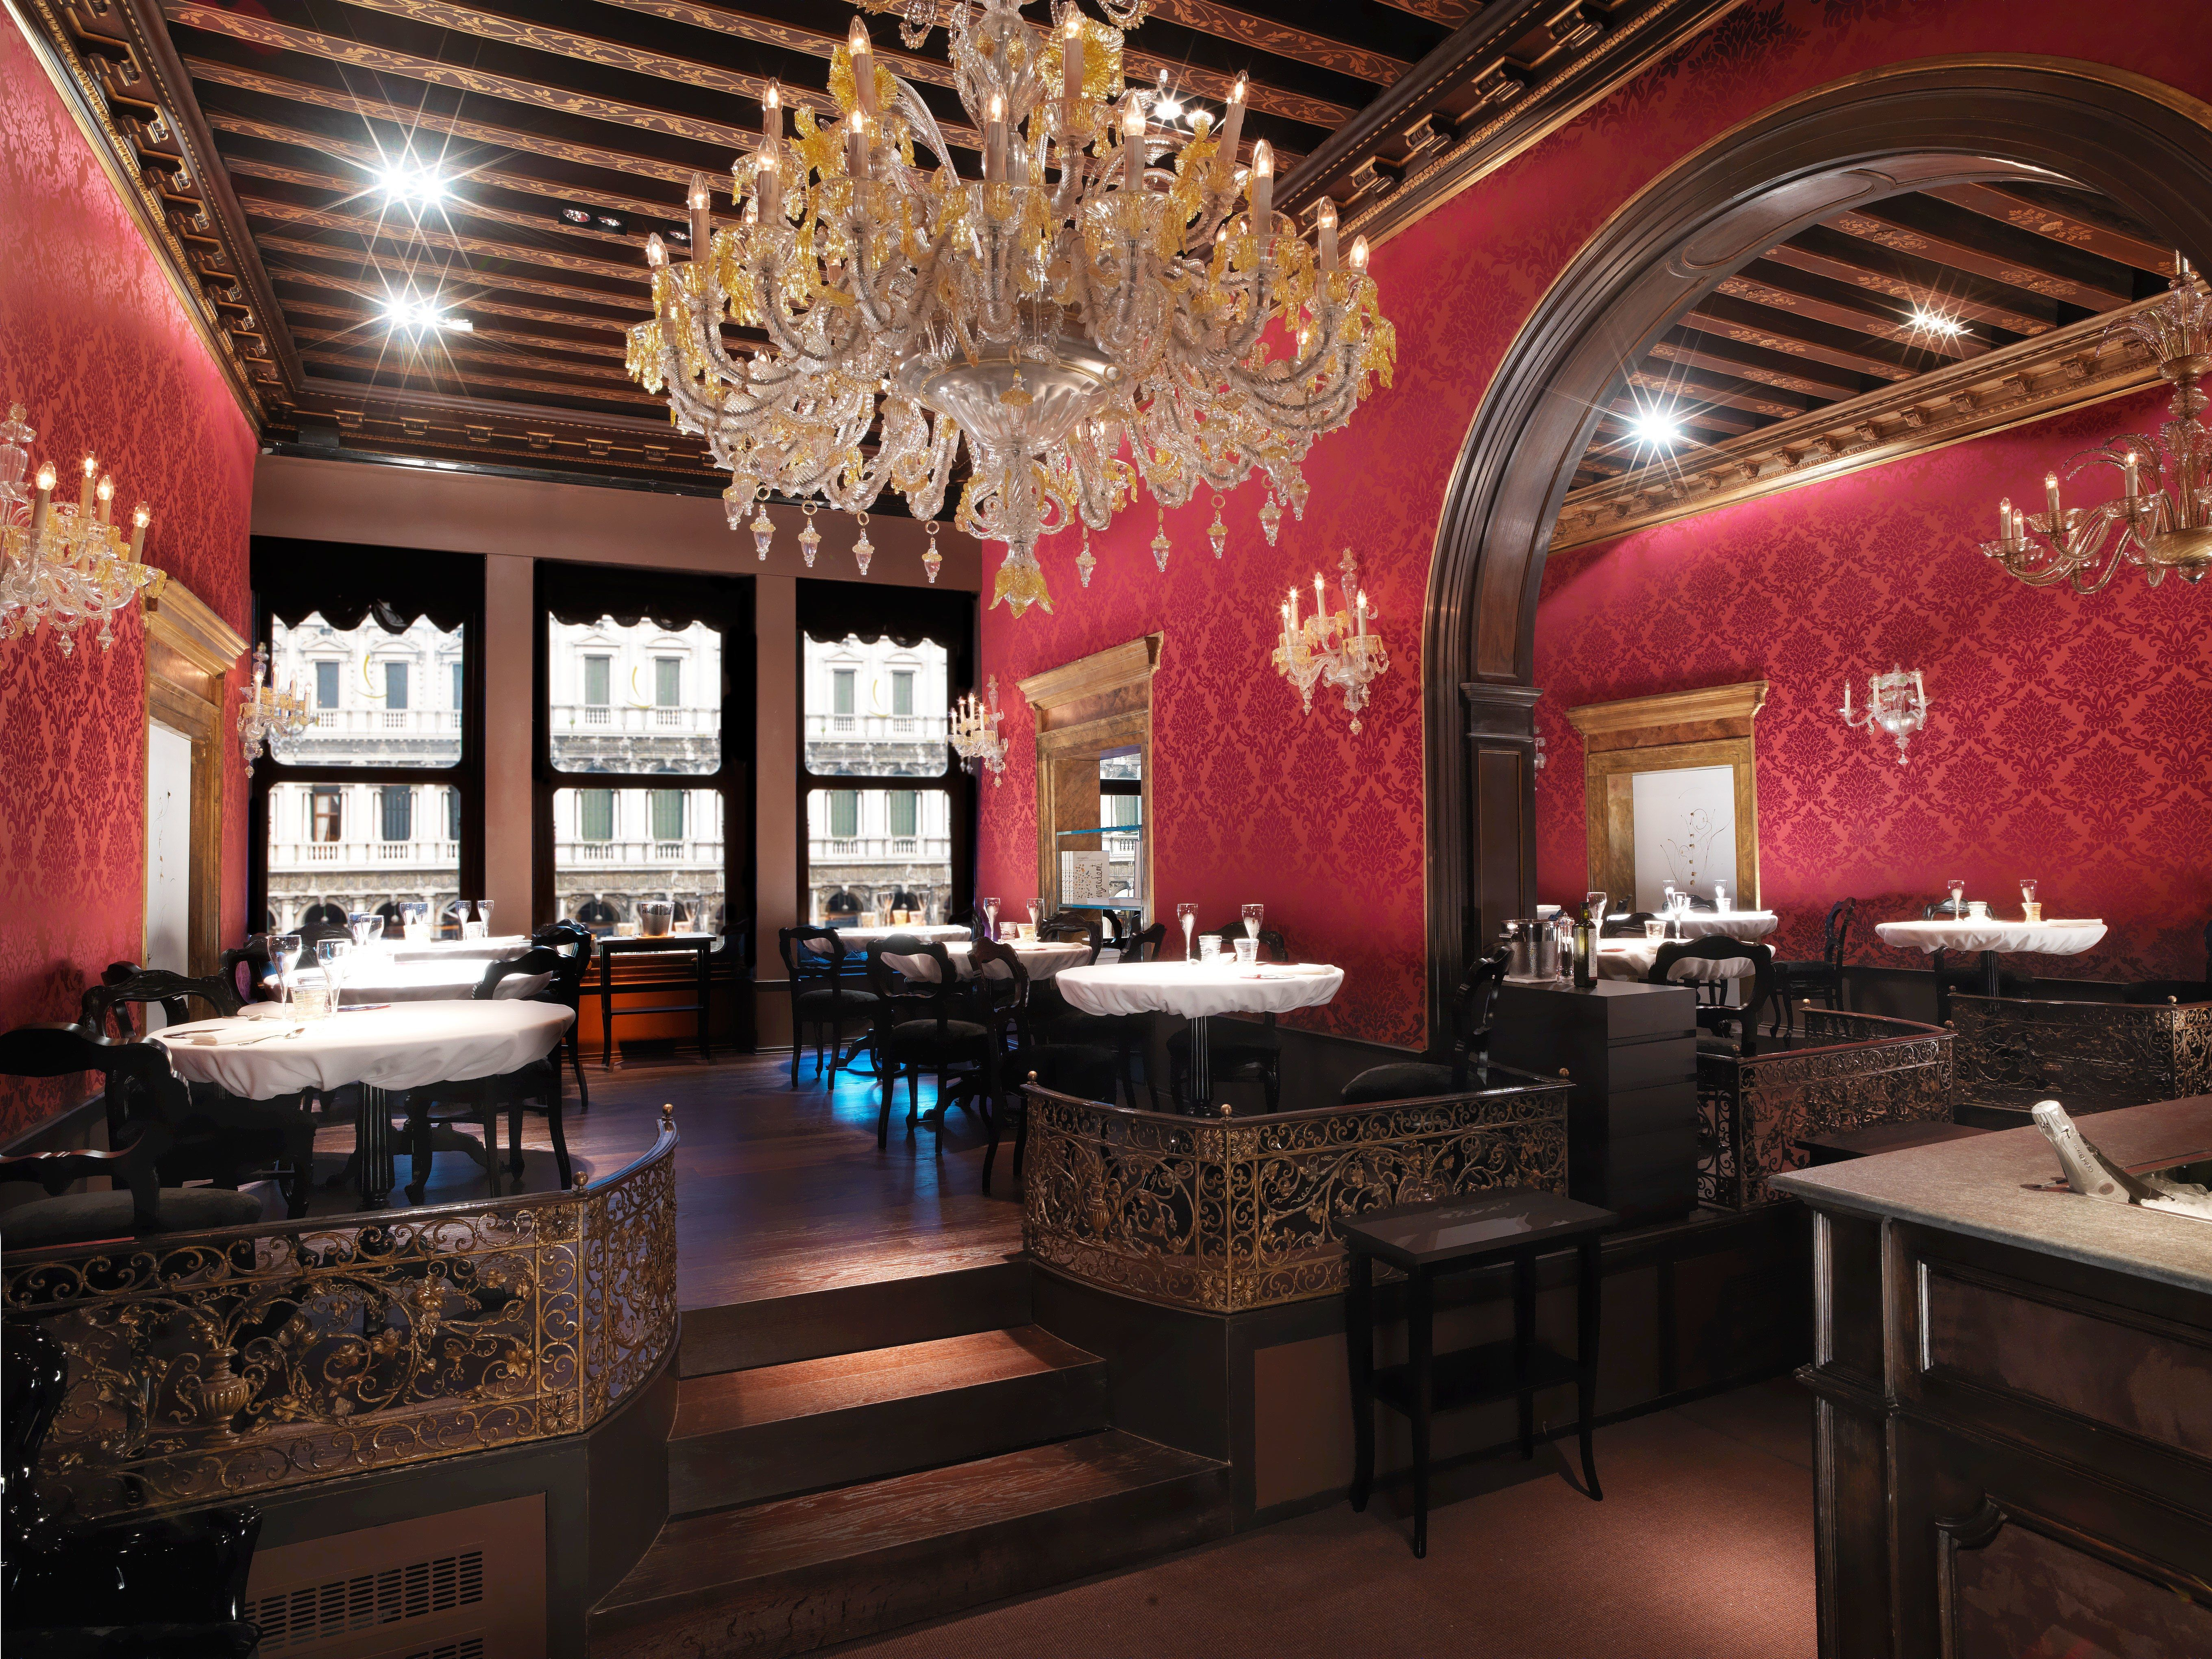 The Most Romantic Restaurants In The World Restaurant Most